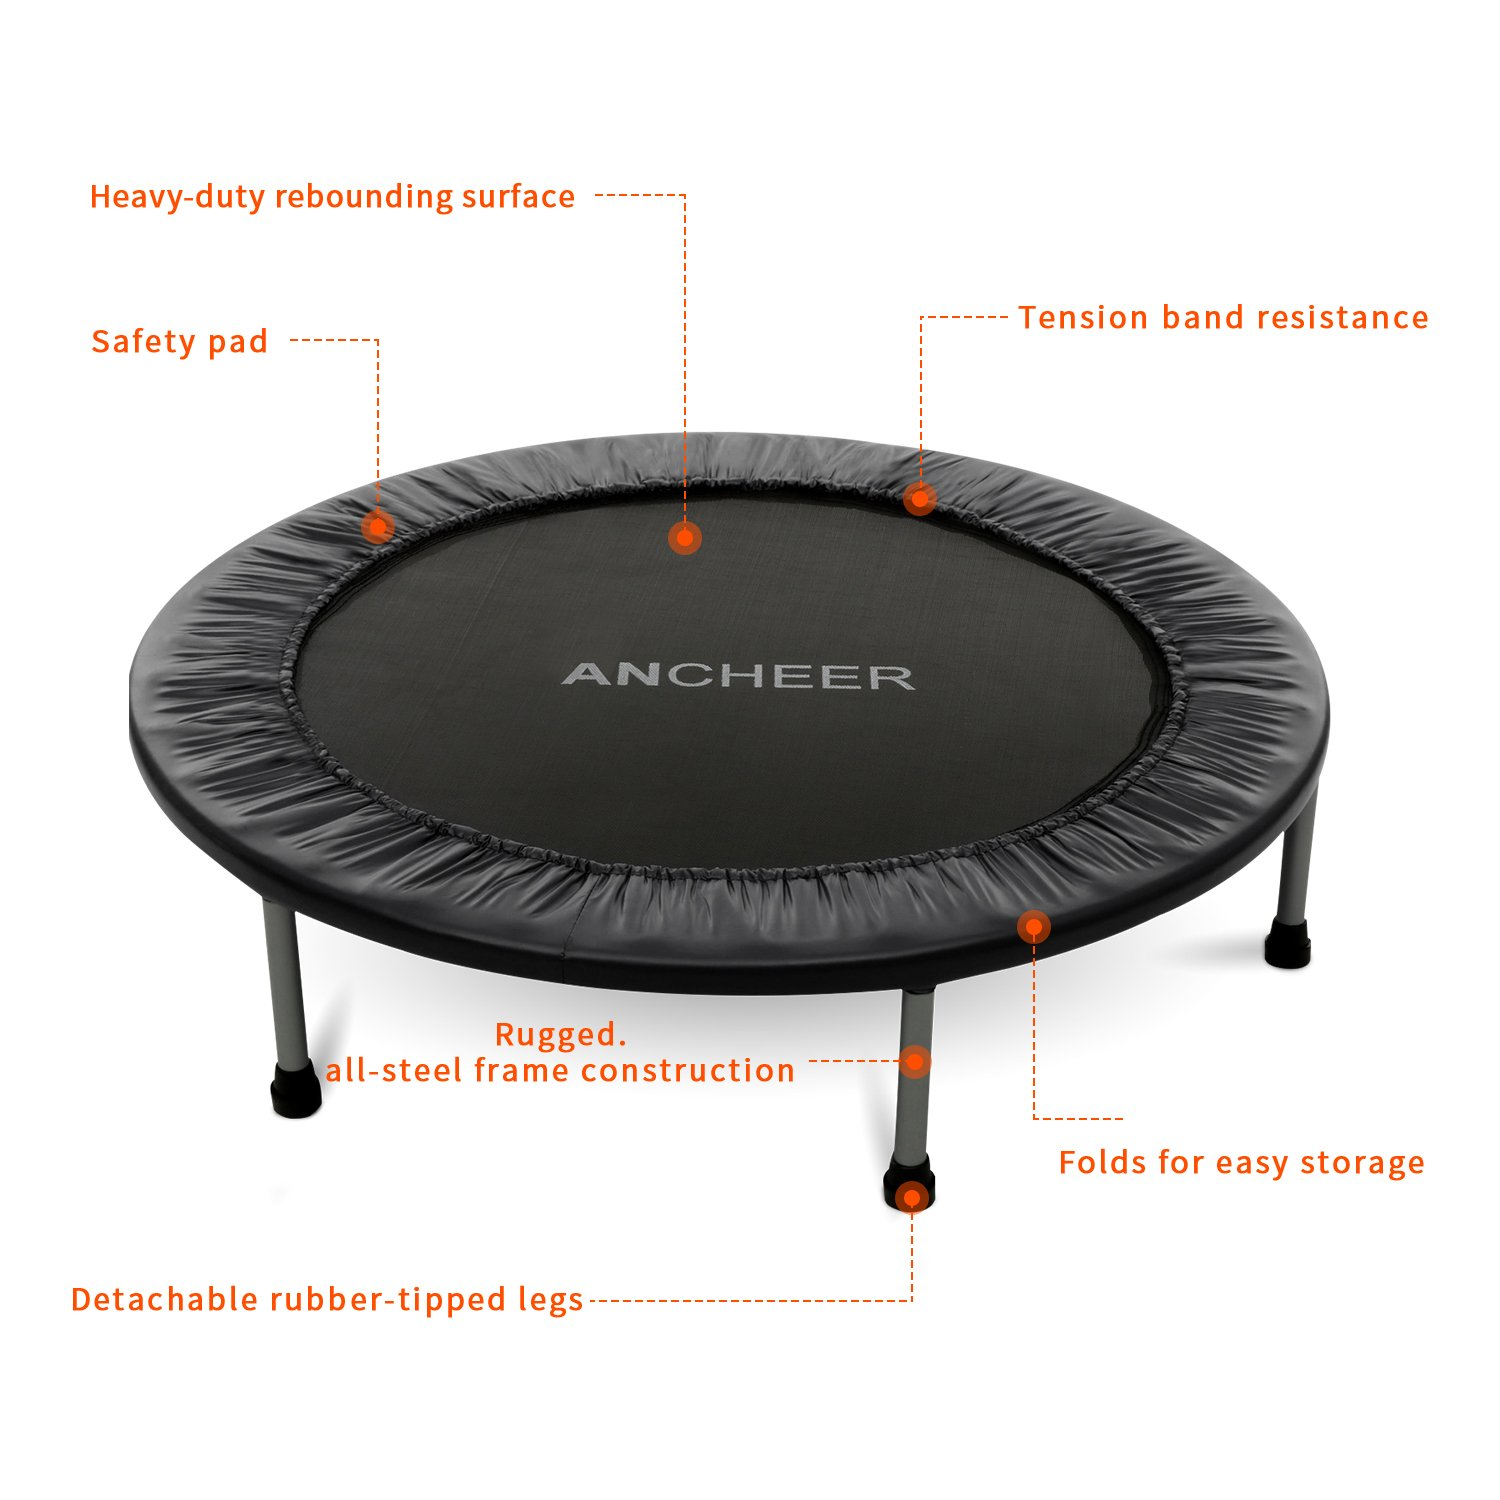 ANCHEER Max Load 220lbs Rebounder Trampoline with Safety Pad for Indoor Garden Workout Cardio Training (2 Sizes: 38 inch / 40 inch, Two Modes: Folding/Not Folding) (Red, 40inch - Folding one time) by ANCHEER (Image #4)